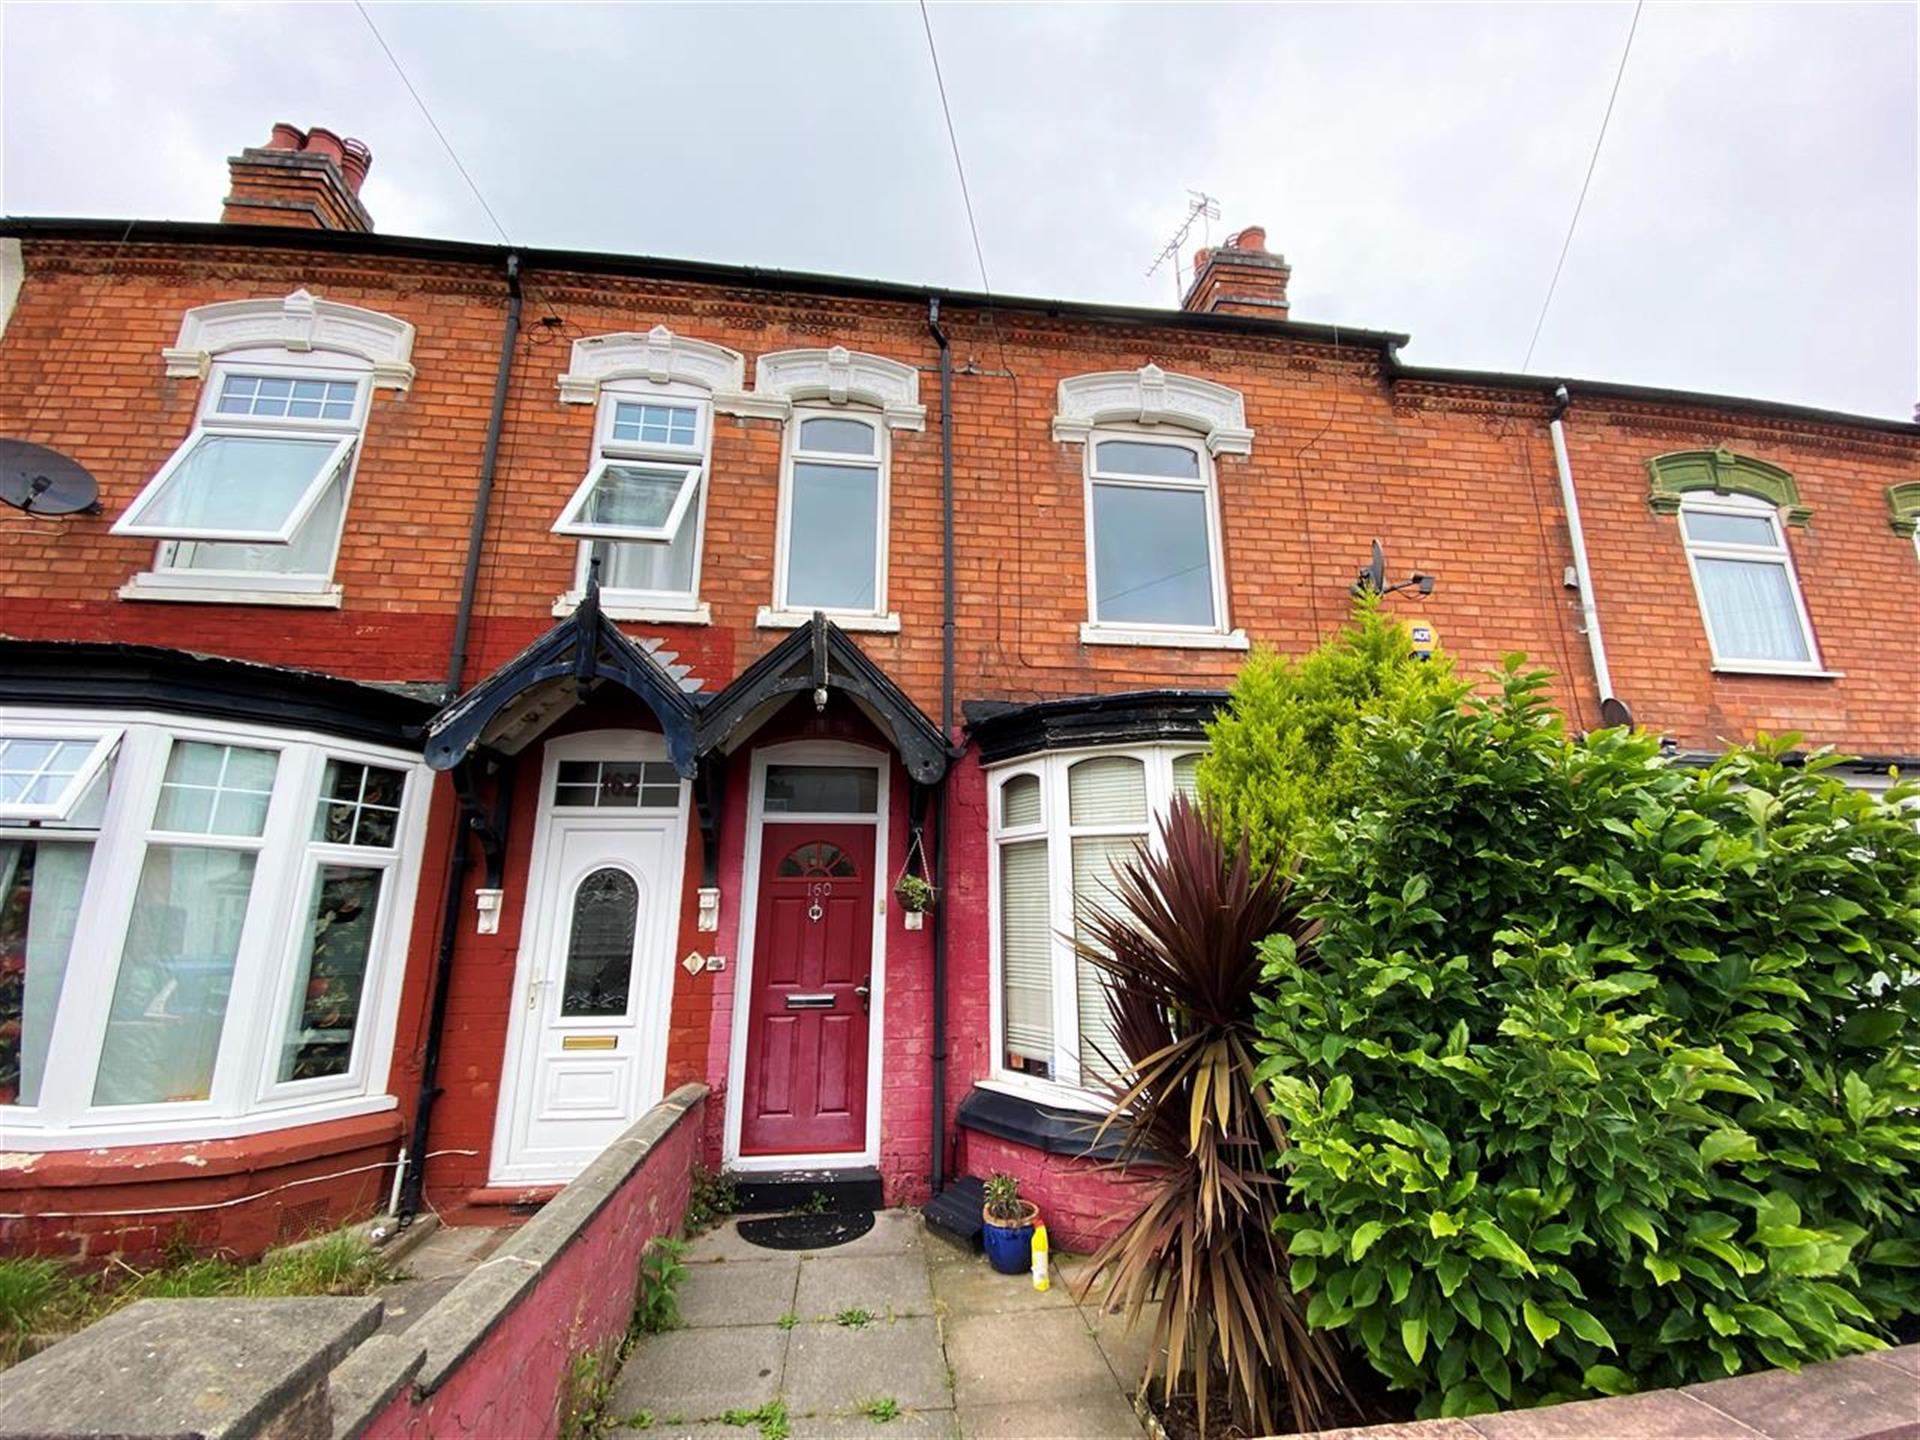 3 Bedroom Terraced House To Rent - Main Picture